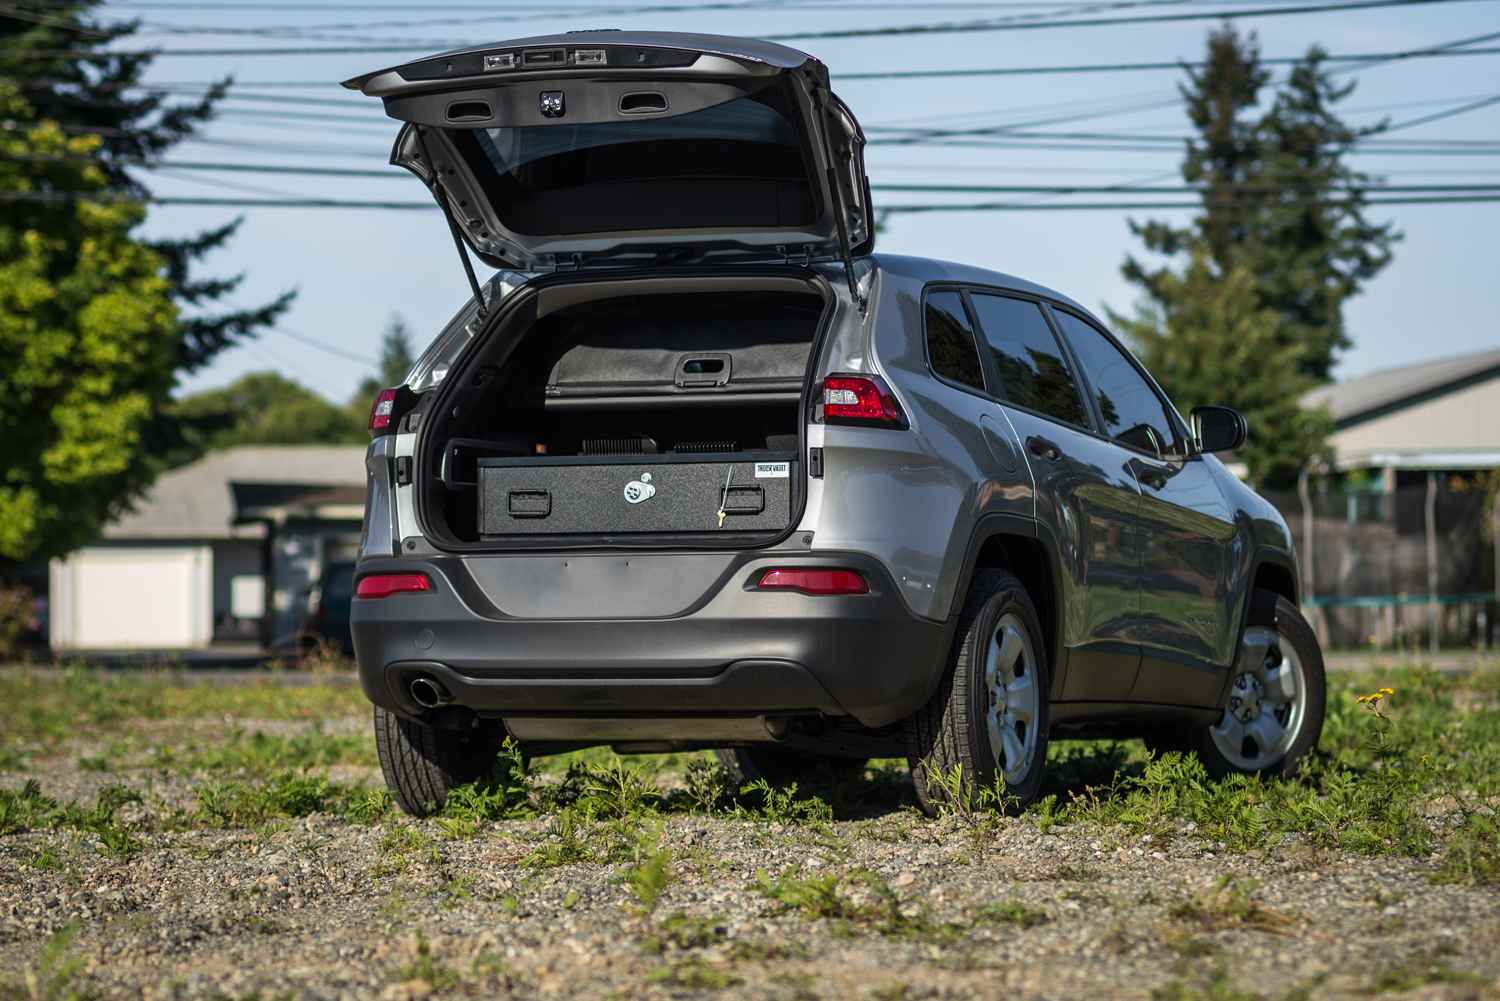 A Jeep Cherokee with a TruckVault Secure Storage System in the trunk.